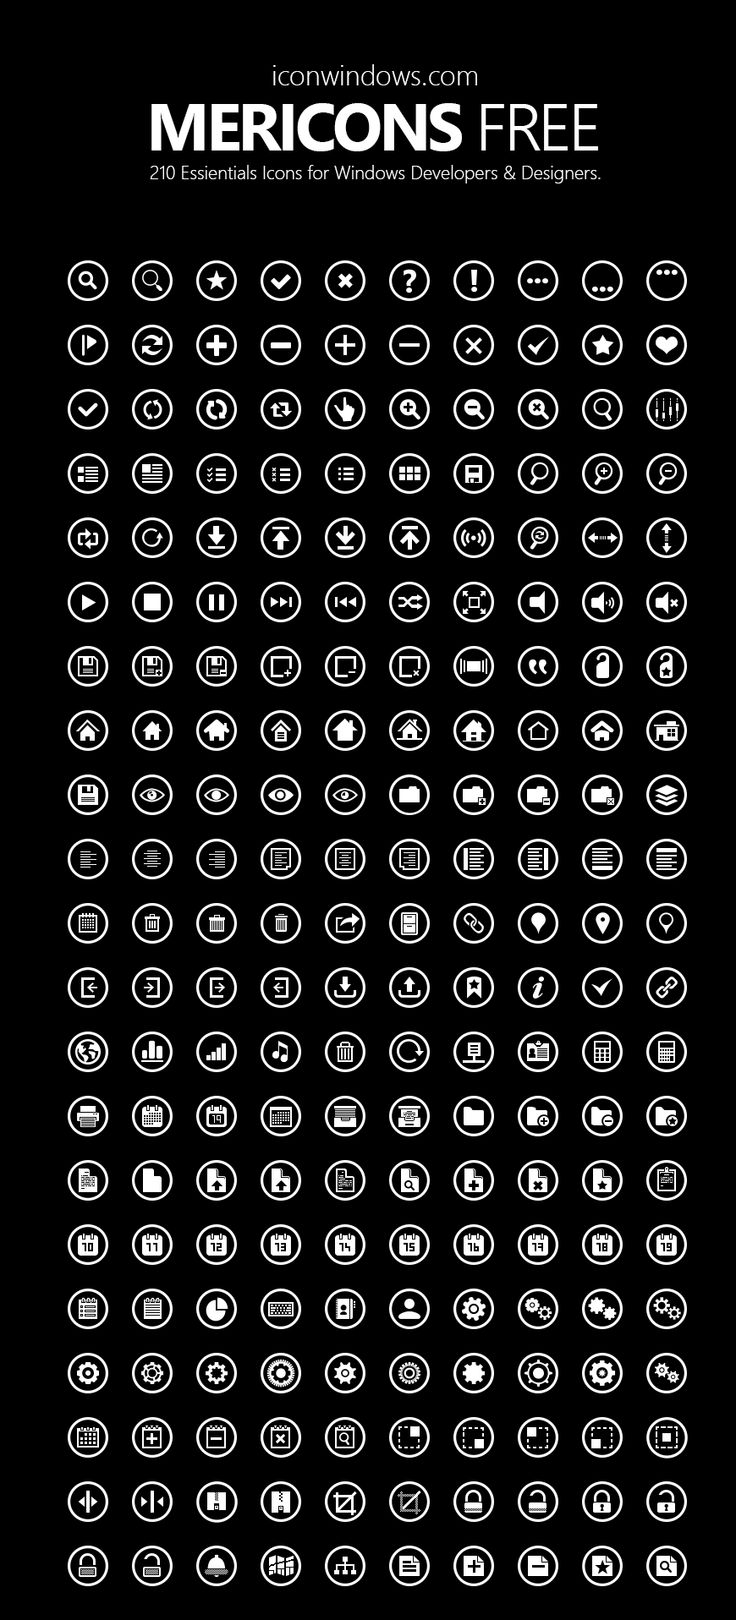 Metricons Free Icon Pack